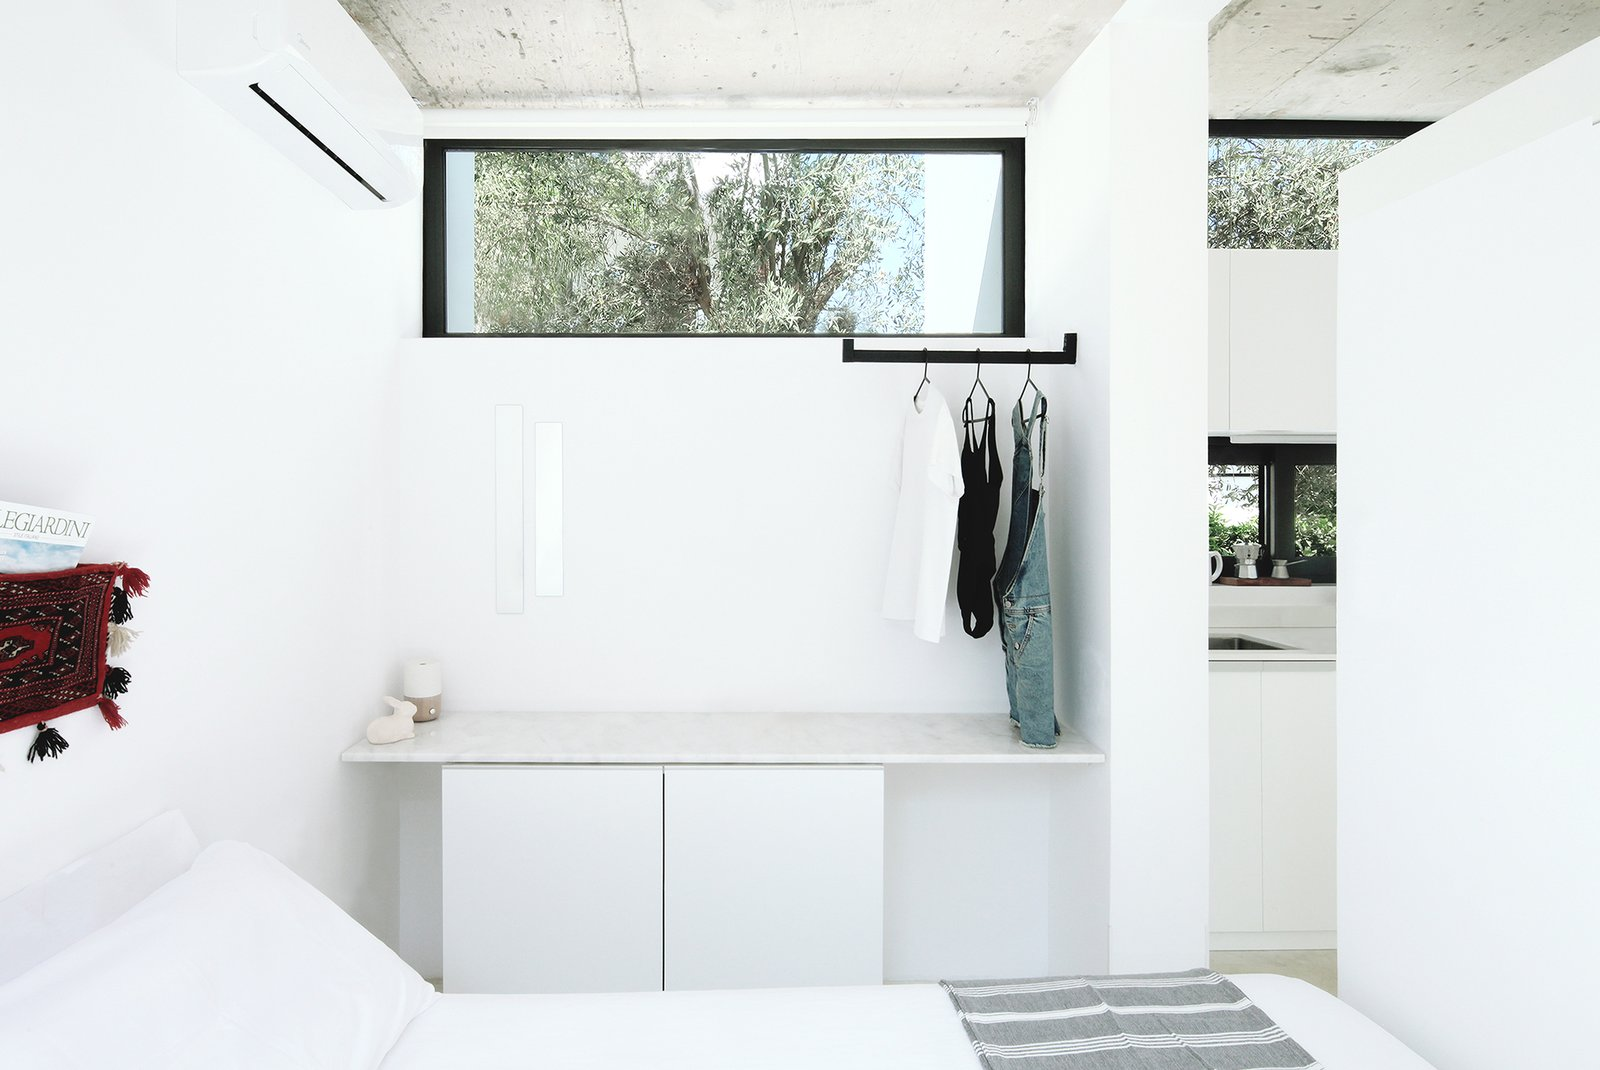 Photo 7 of 14 in Rent This Modular Micro Cabin For Your Next Grecian ...